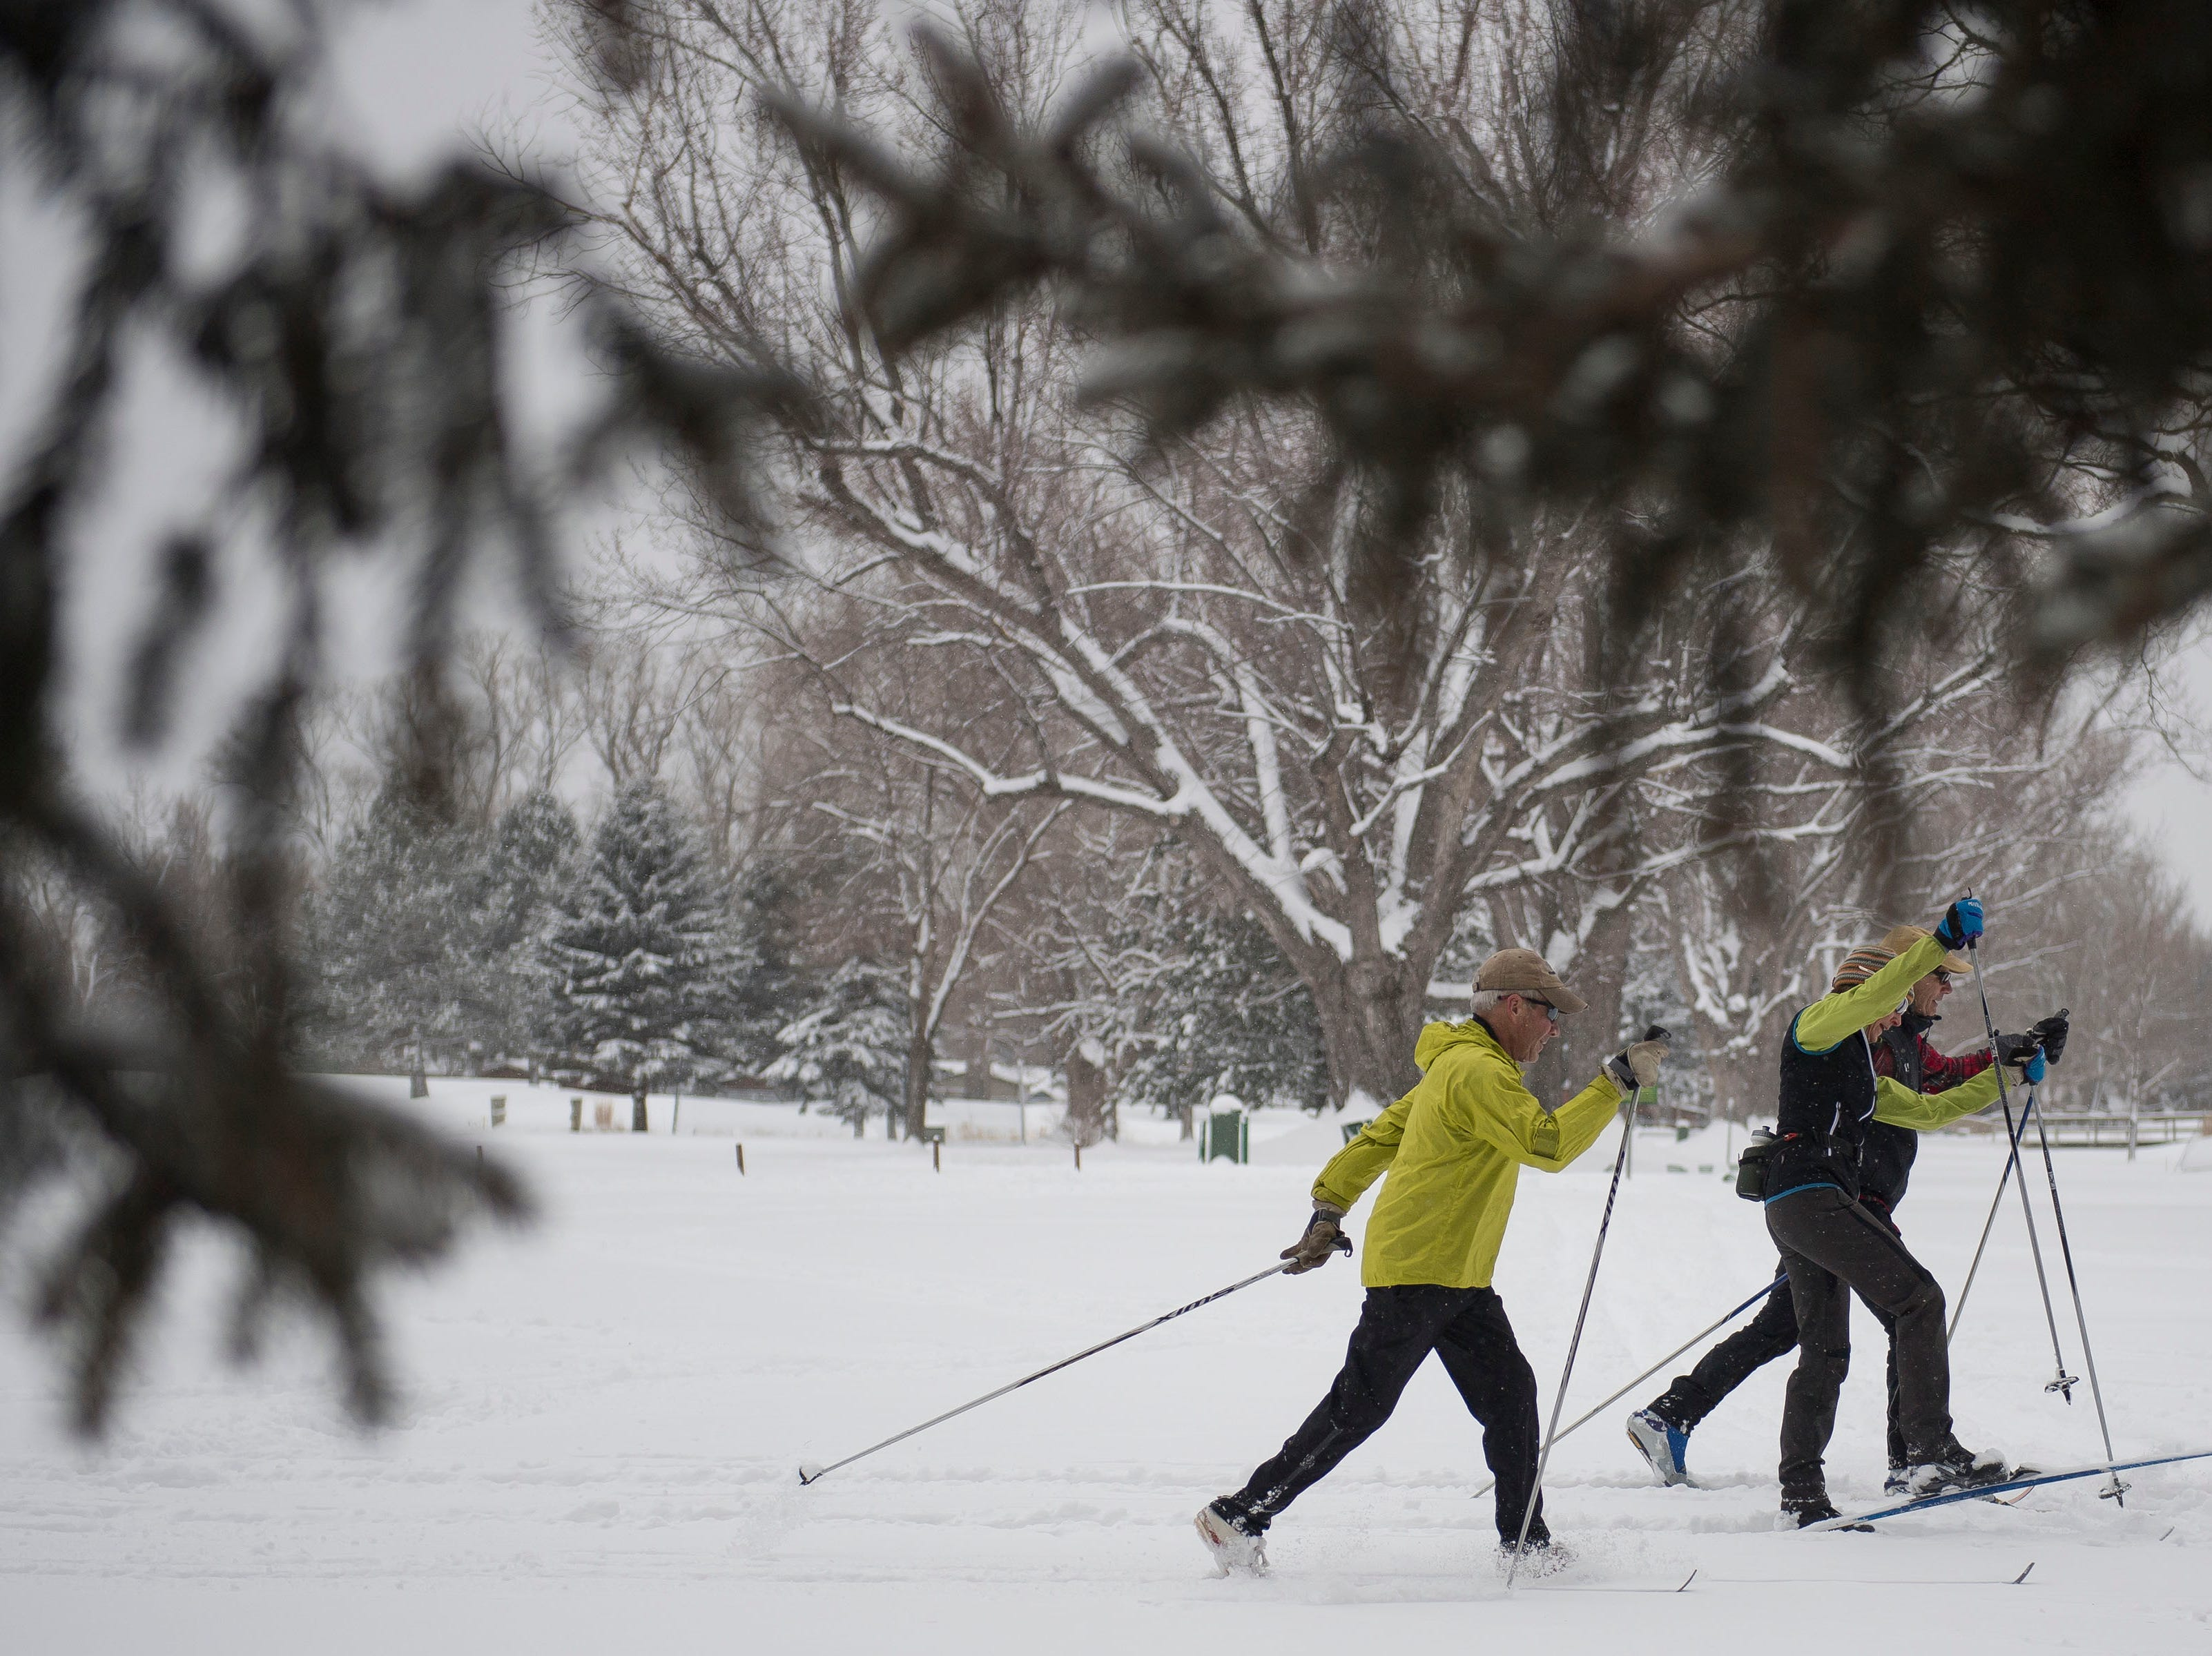 Locals, from left, Doug, Amy, and Jan Hahn cross-country ski through City Park Nine Golf Course on Saturday, March 2, 2019, in Fort Collins, Colo.